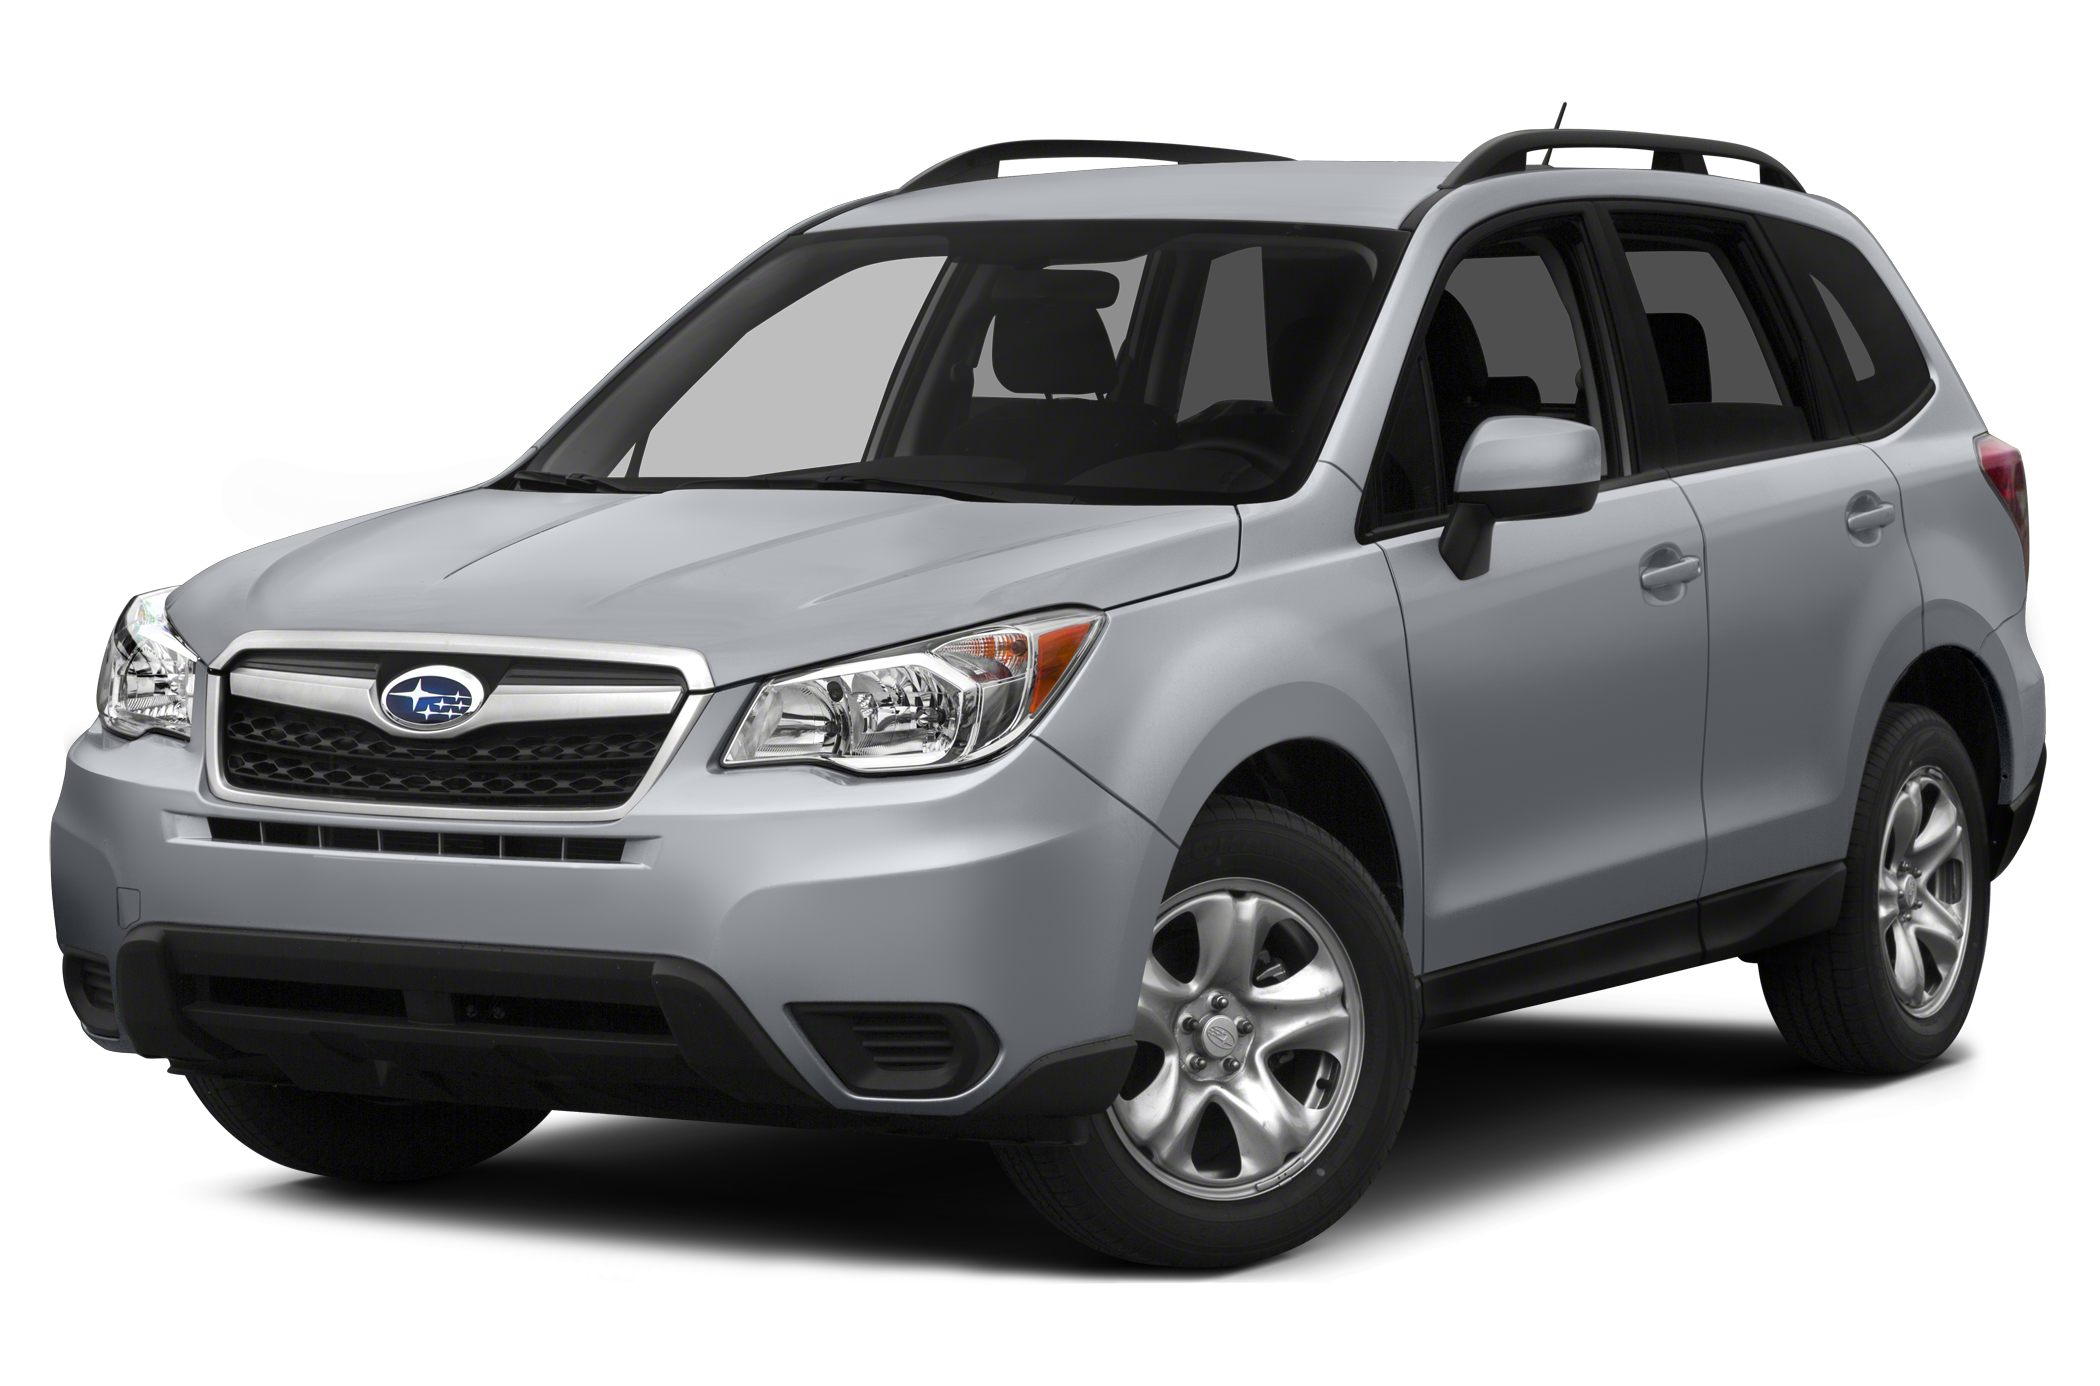 2015 Subaru Forester 2.5i Premium SUV for sale in Erie for $27,148 with 0 miles